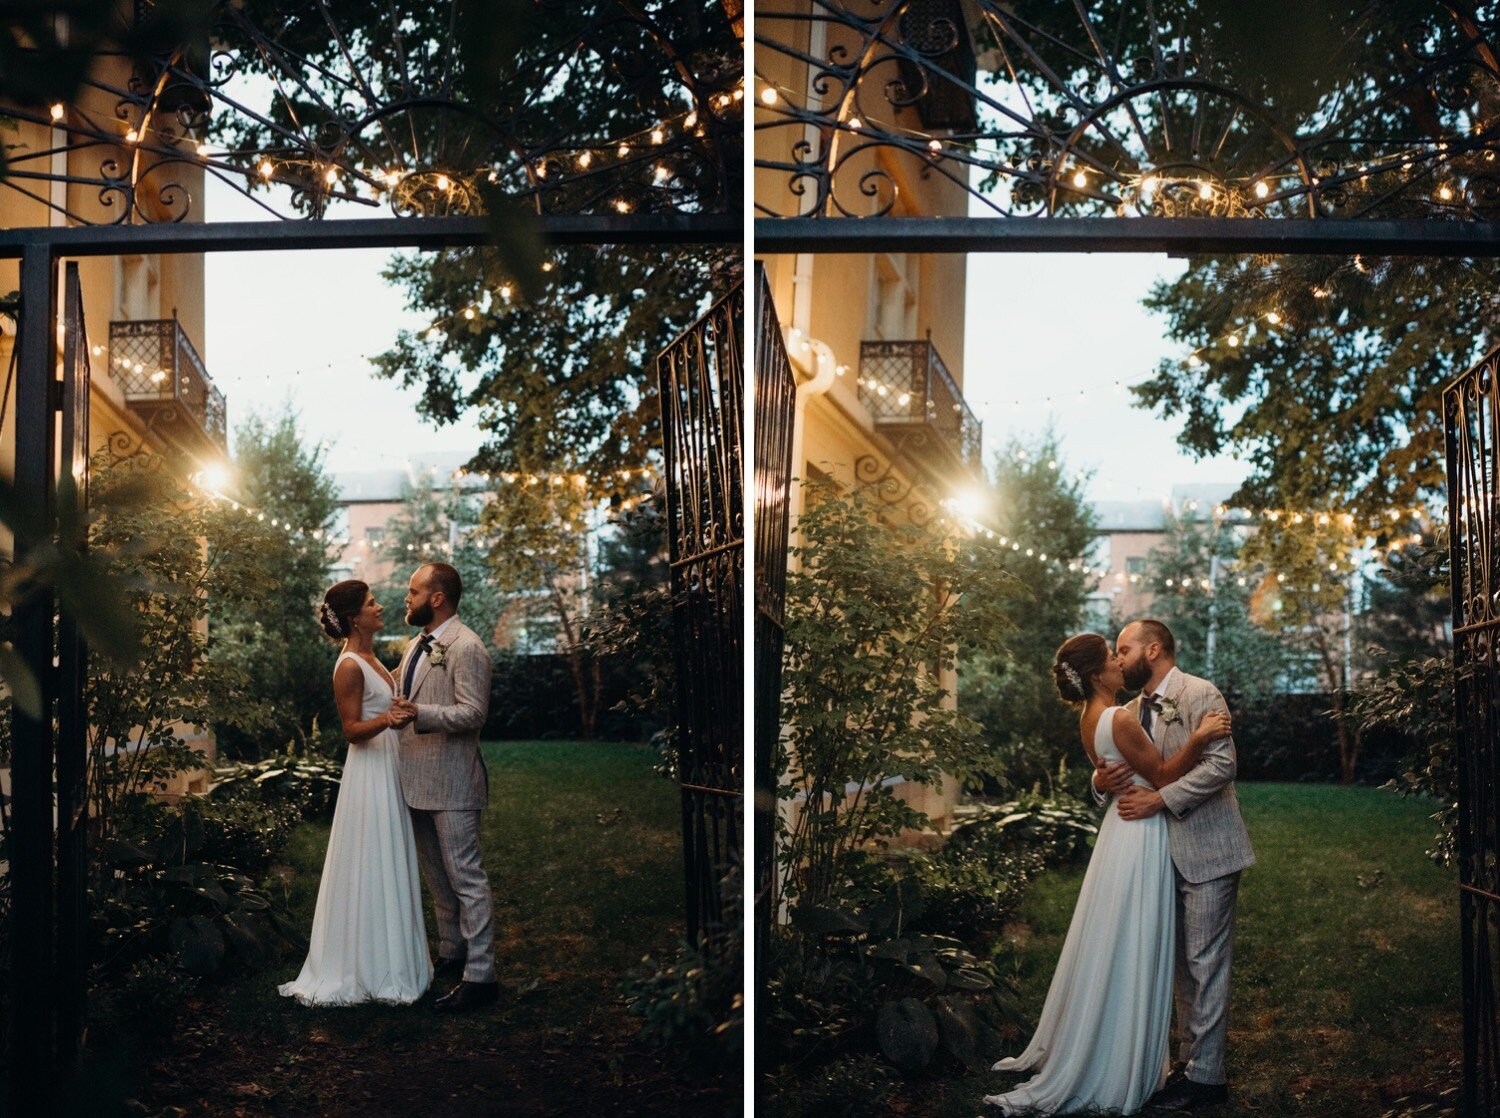 54_josephine_butler_photographer_center_dc_parks_washington_wedding.jpg